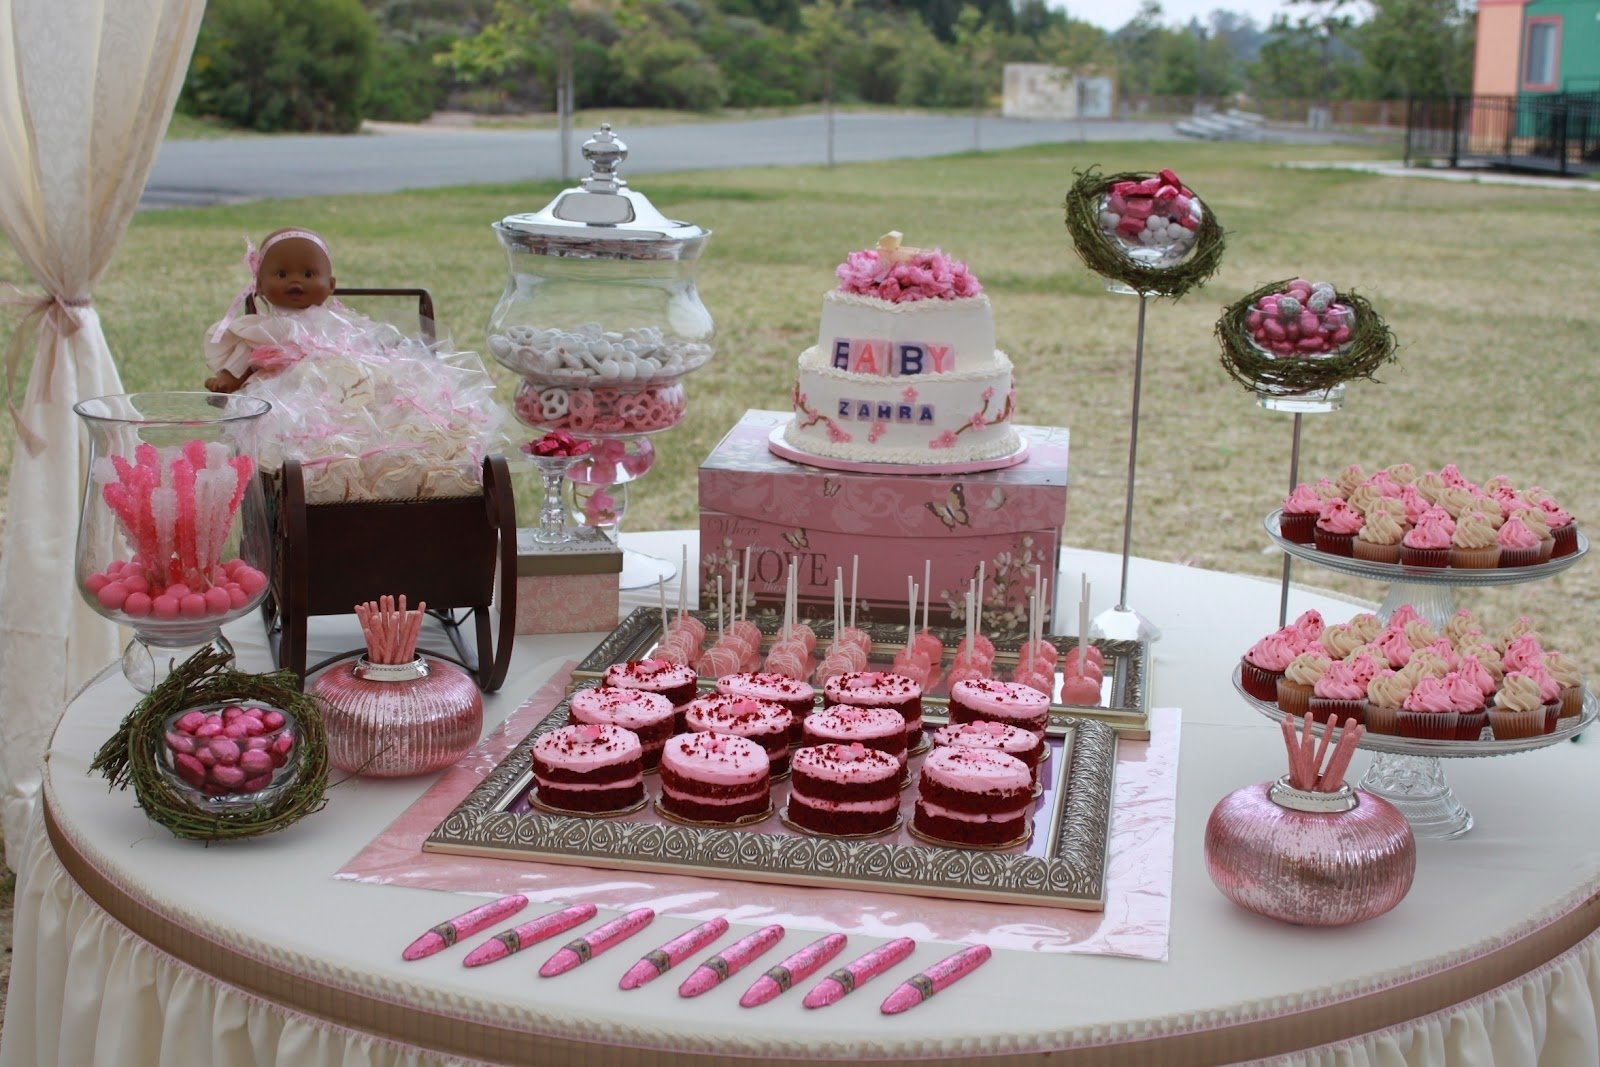 10 Stylish Pink And Gray Baby Shower Ideas baby shower food ideas baby shower food pink 2 2020